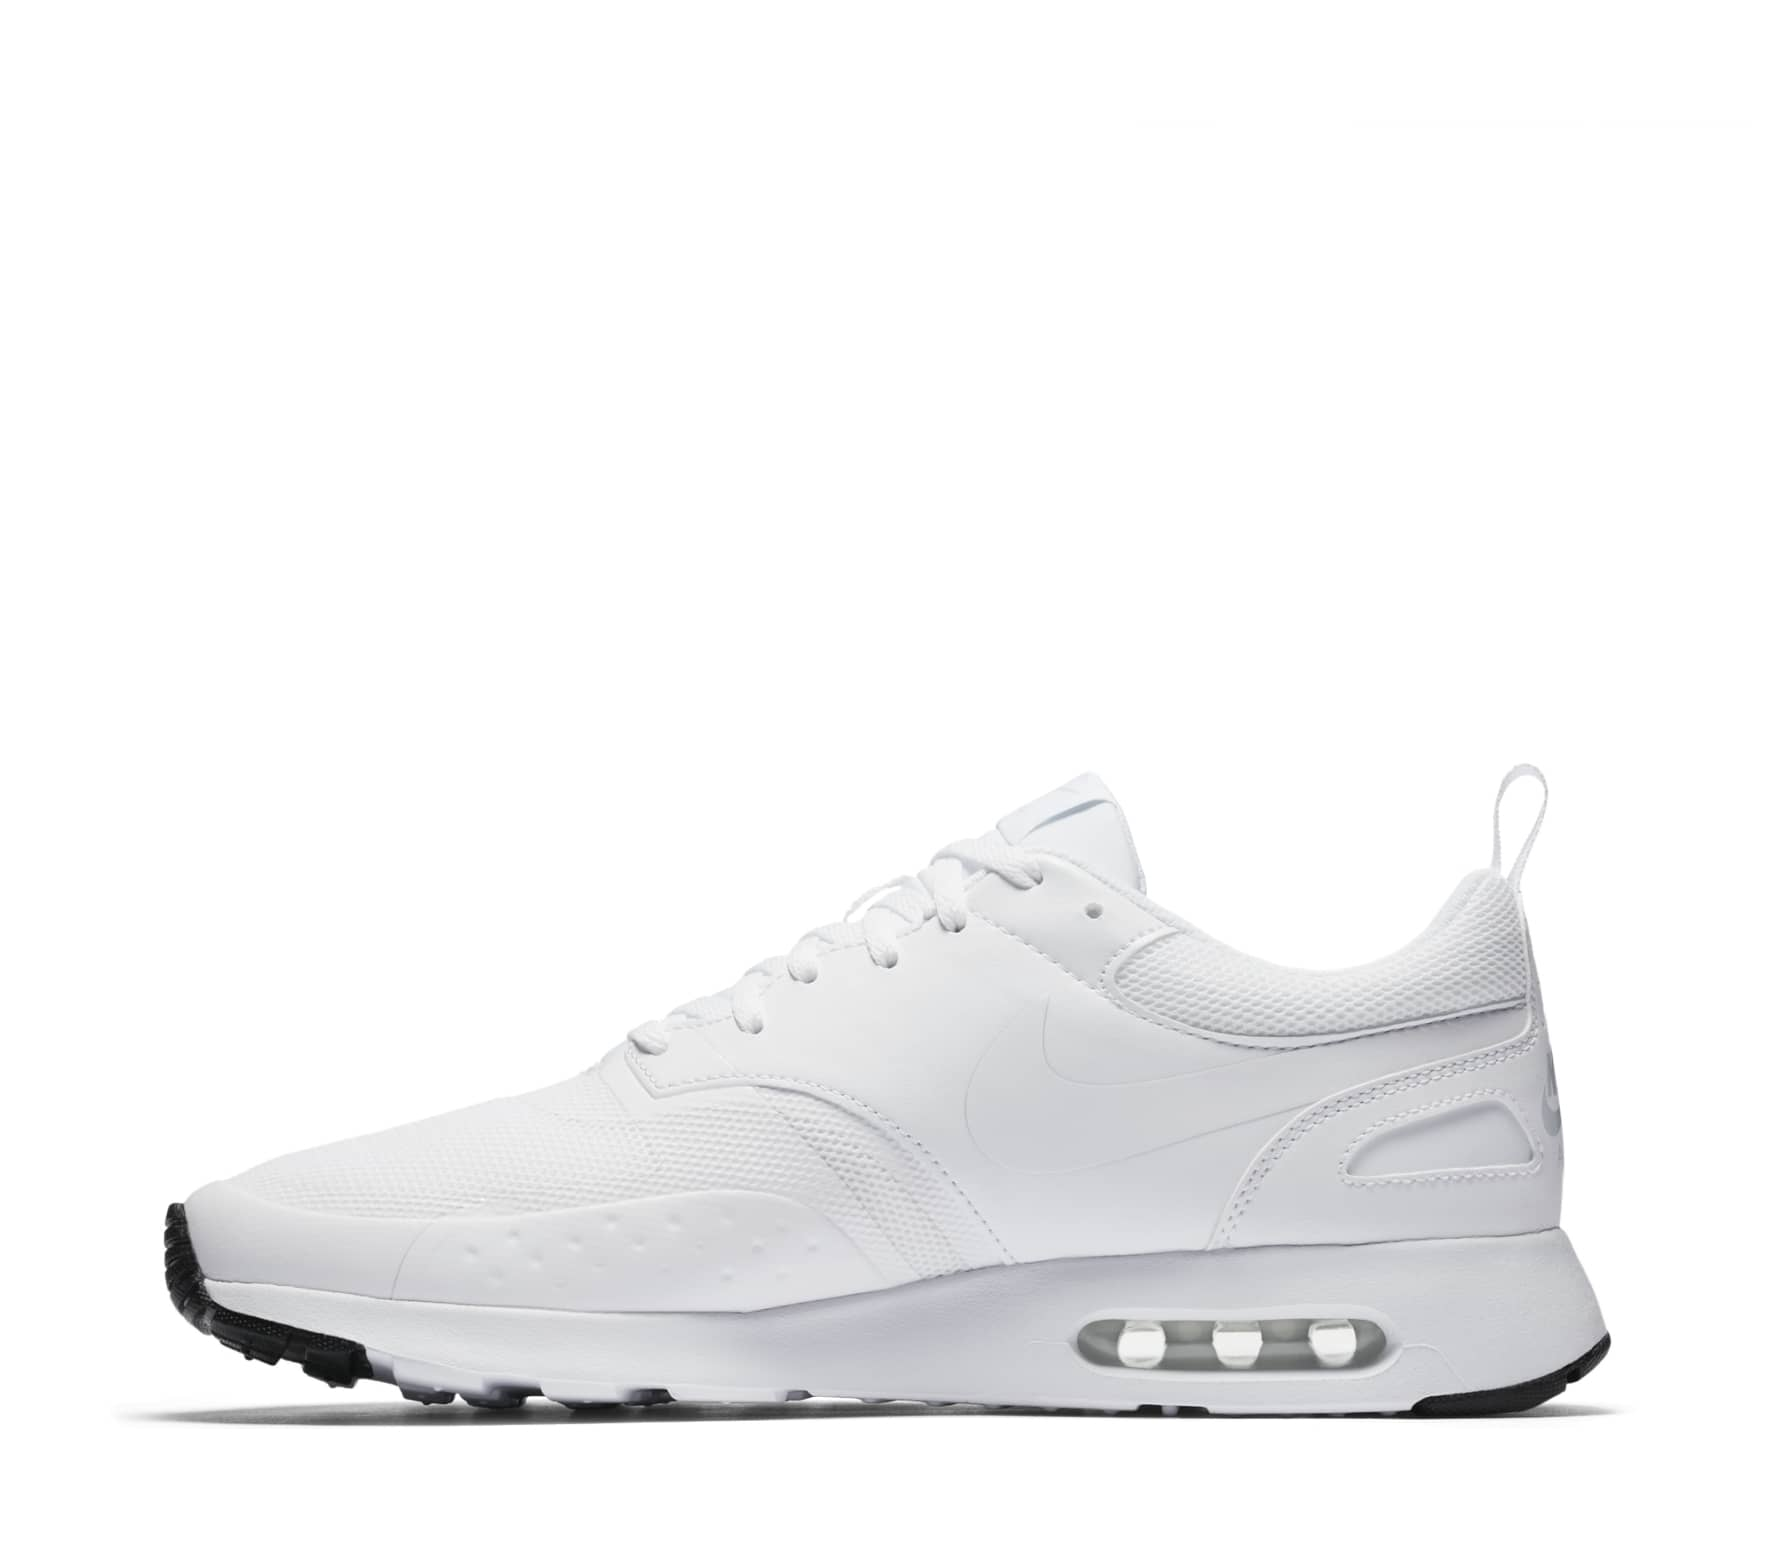 low priced 6081e e1508 Nike - Air Max Vision Herren Sneaker (weiß)